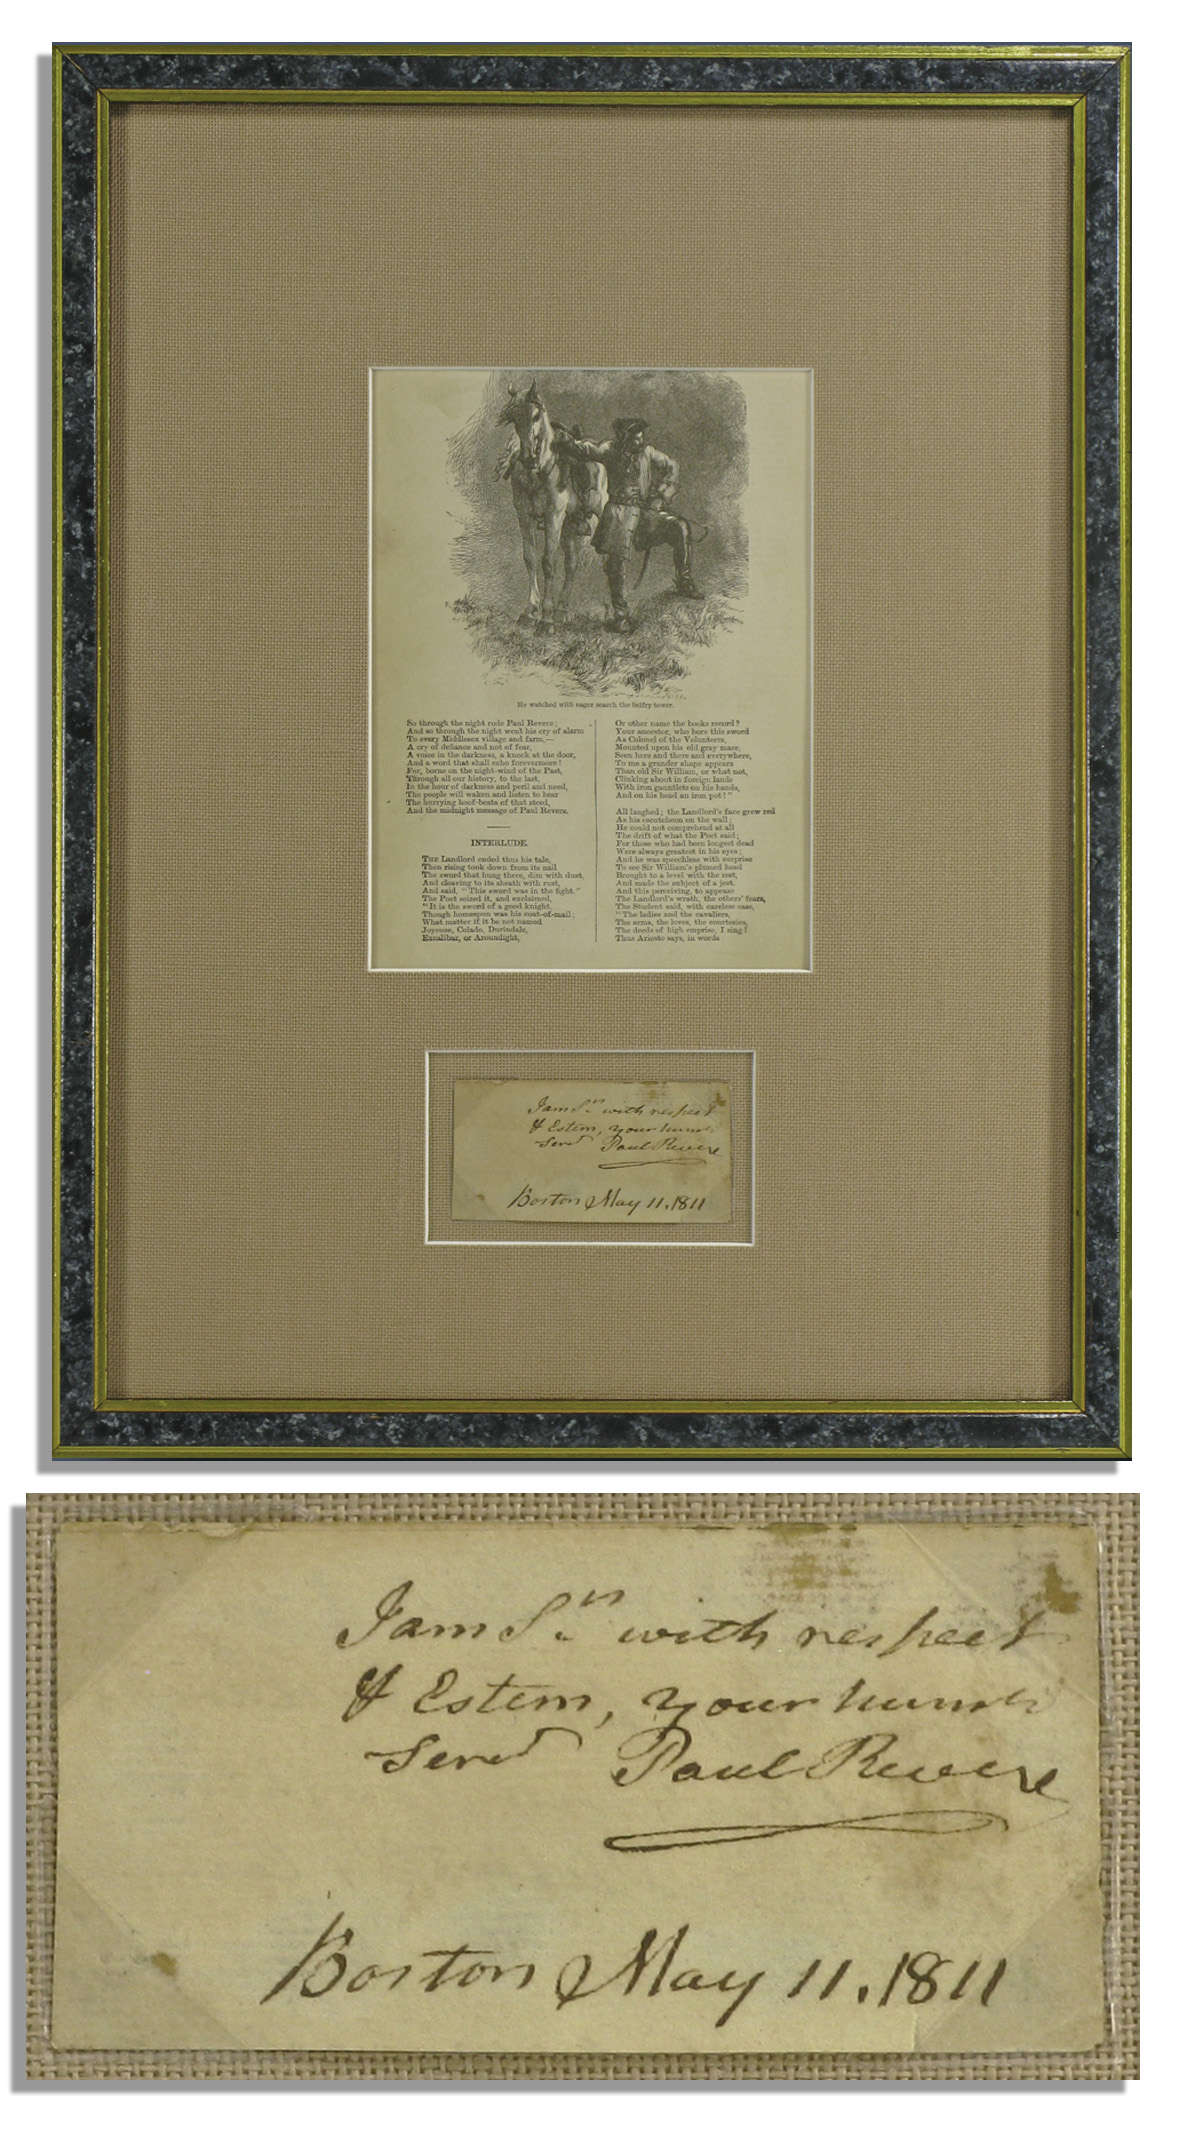 Paul Revere Autograph Paul Revere 1811 Autograph Note Signed -- Elegantly Framed With a Copy of Longfellow's Famous Poem About Revere